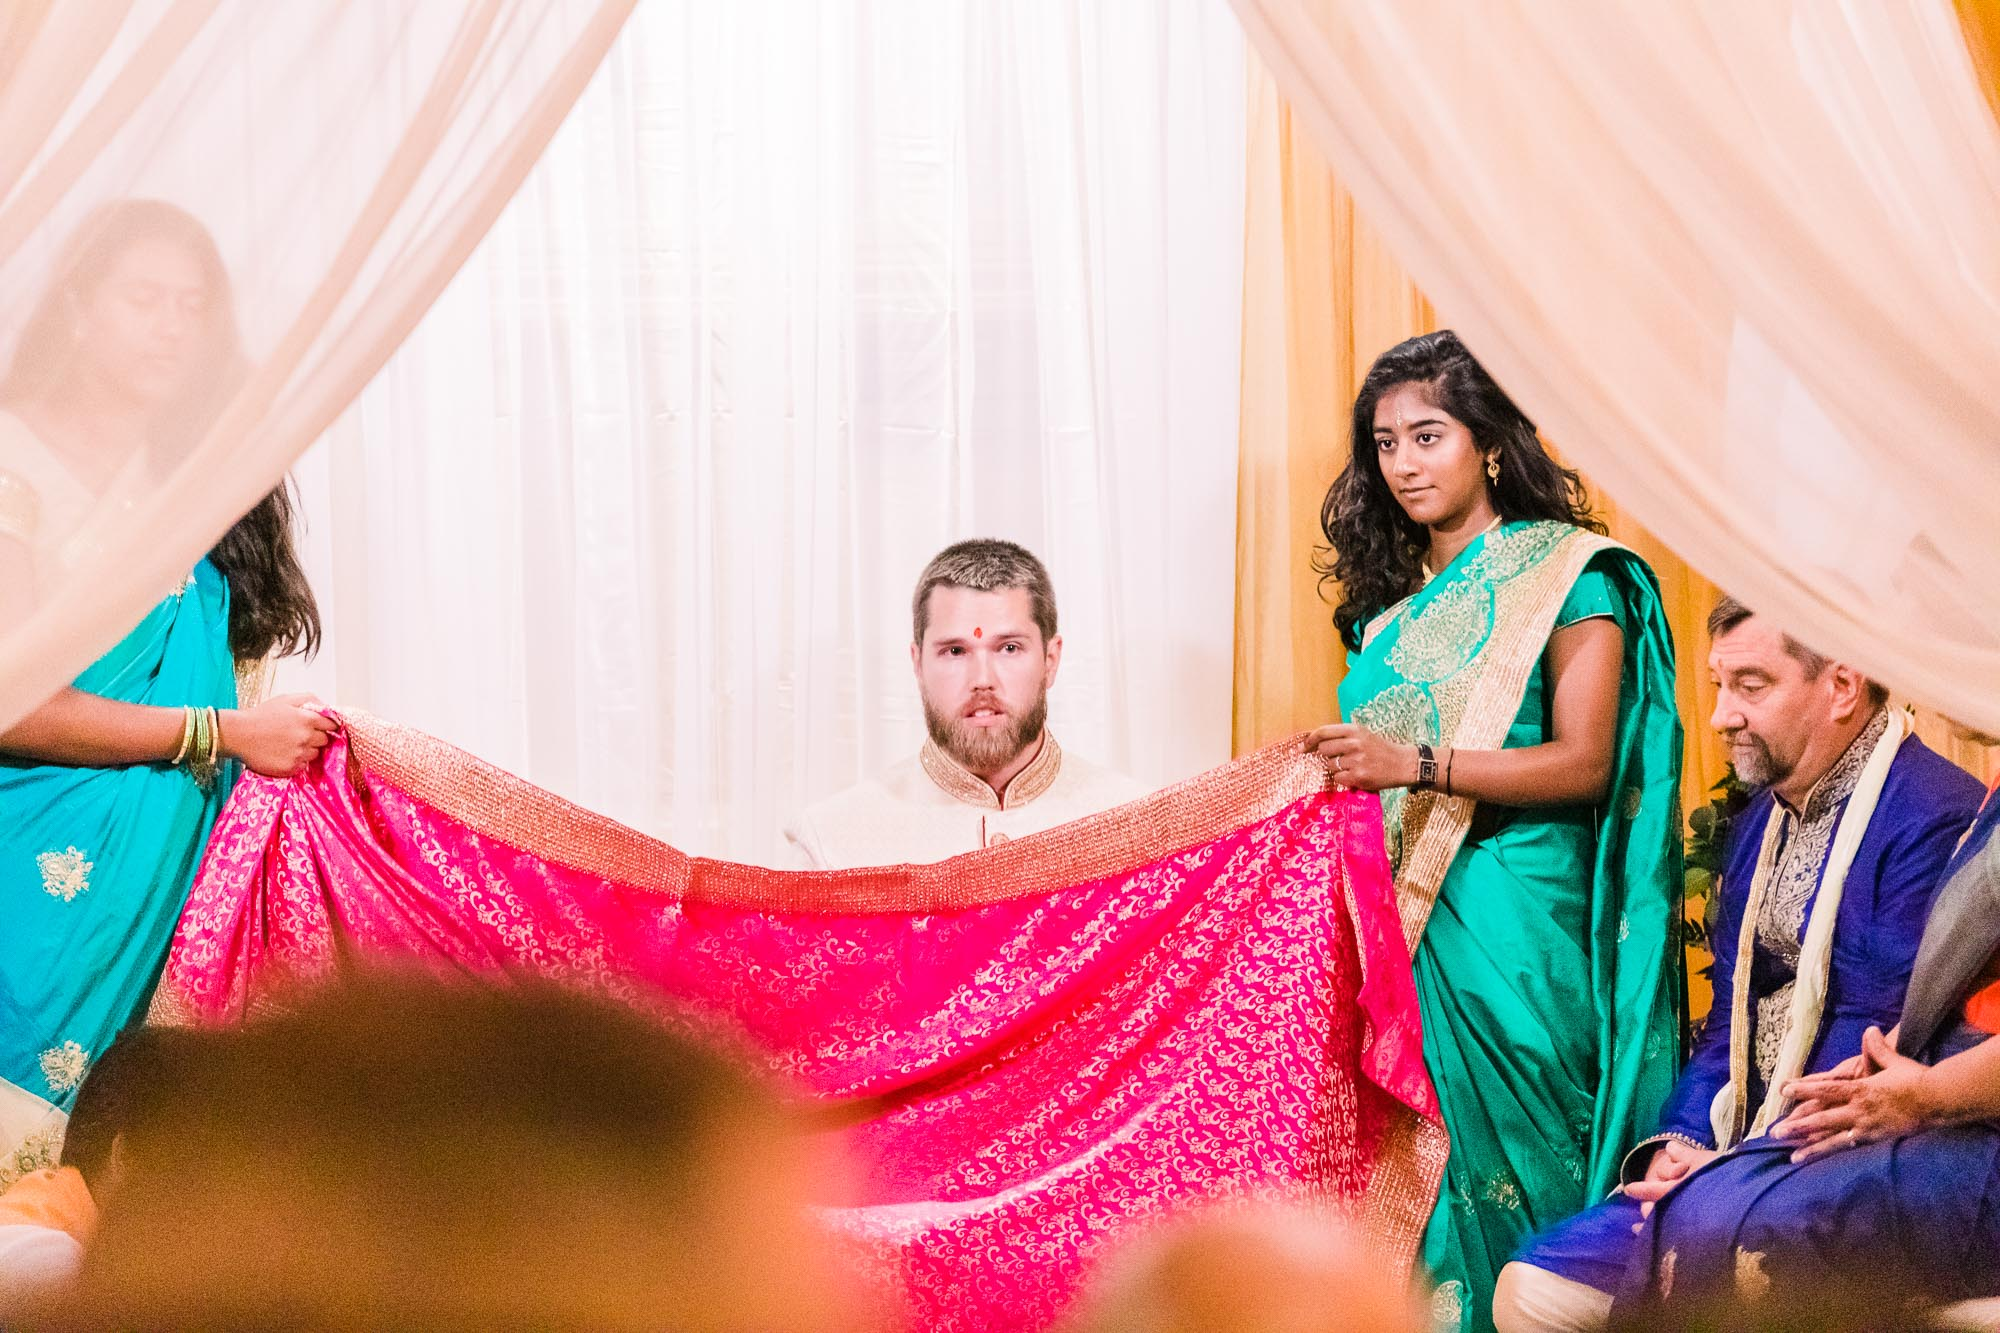 Scranton_Radisson_Hindu_Wedding-8853.jpg